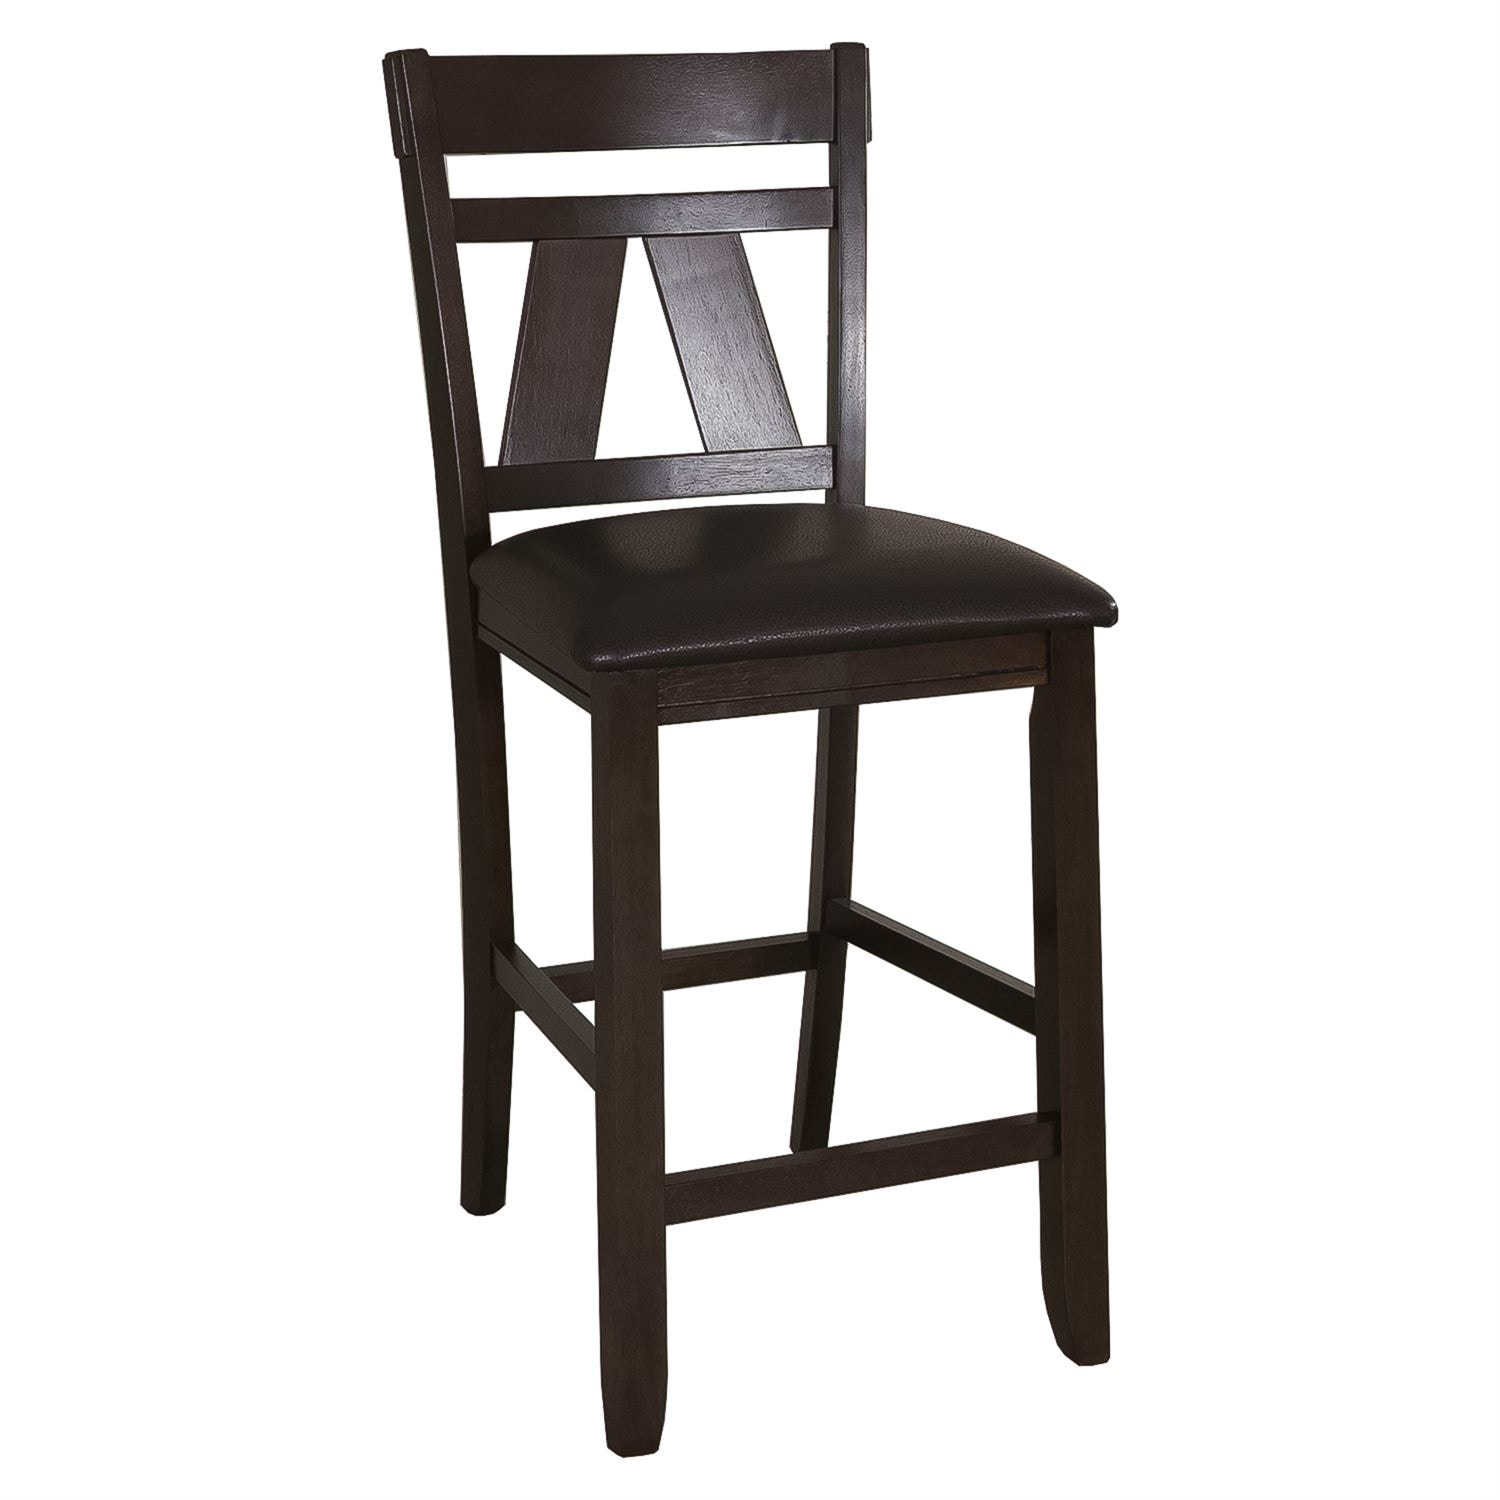 Liberty Furniture Splat Back Counter Chair (RTA) 116 B250124